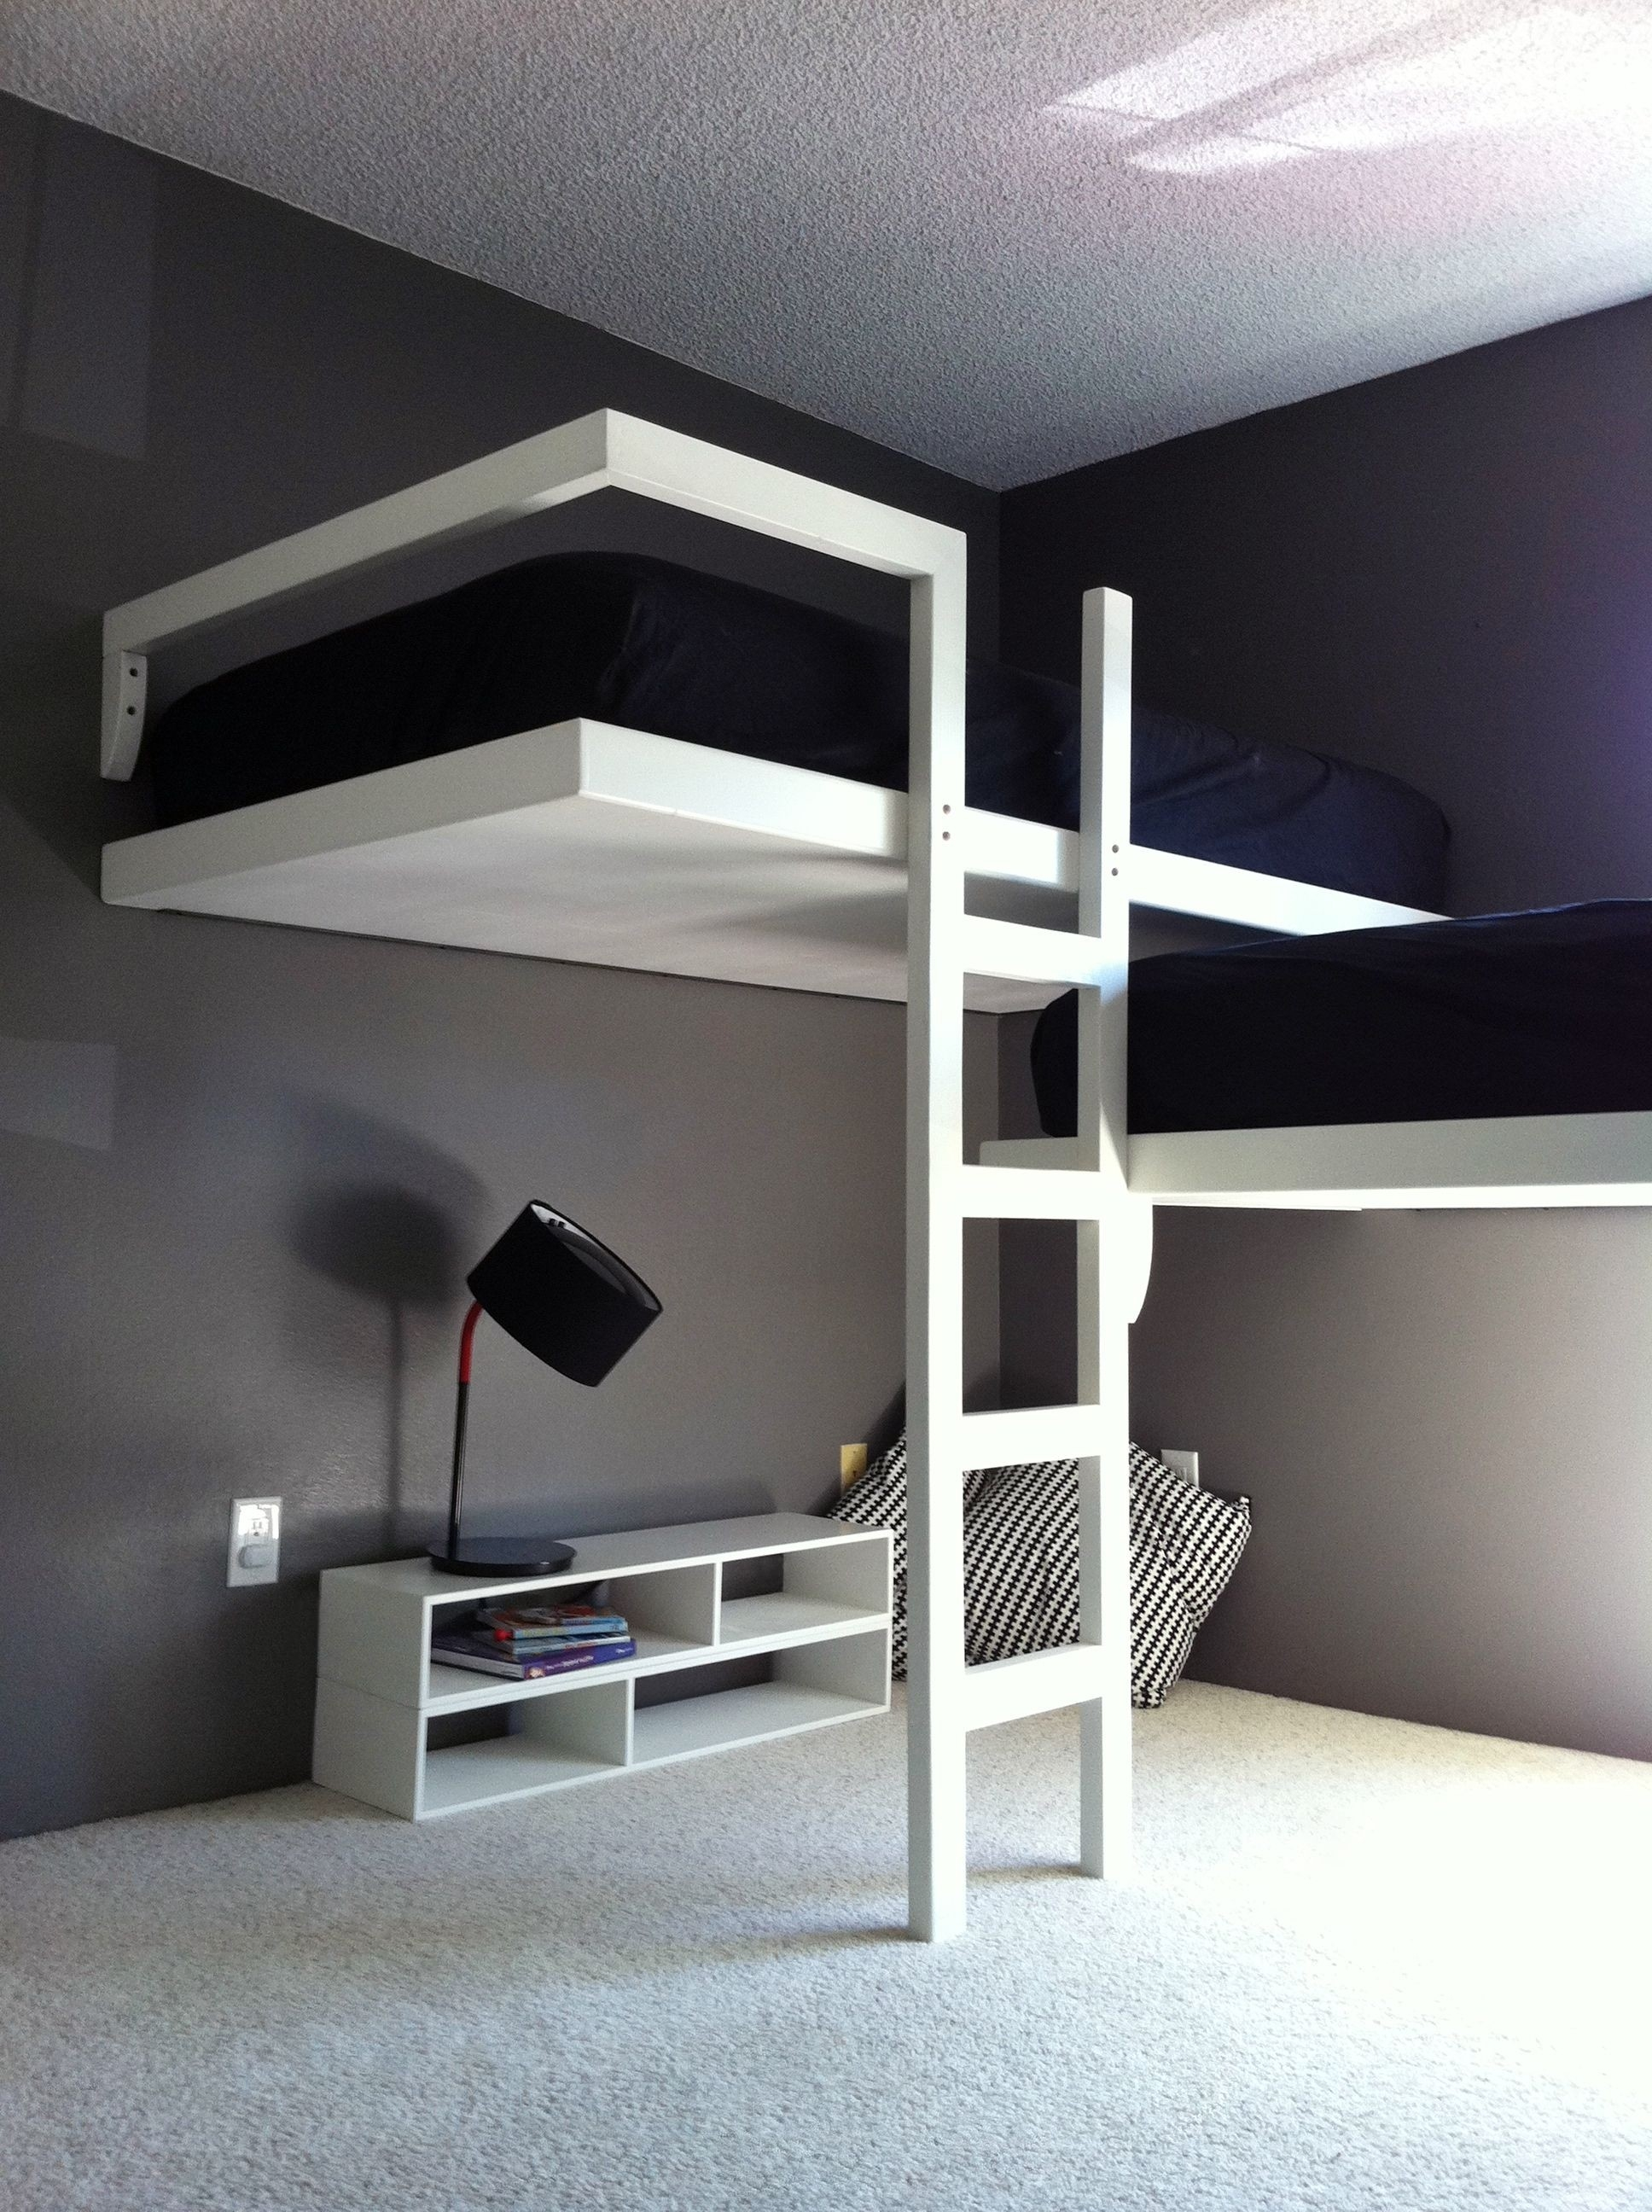 Picture of: L Shape Loft Bed Ideas On Foter